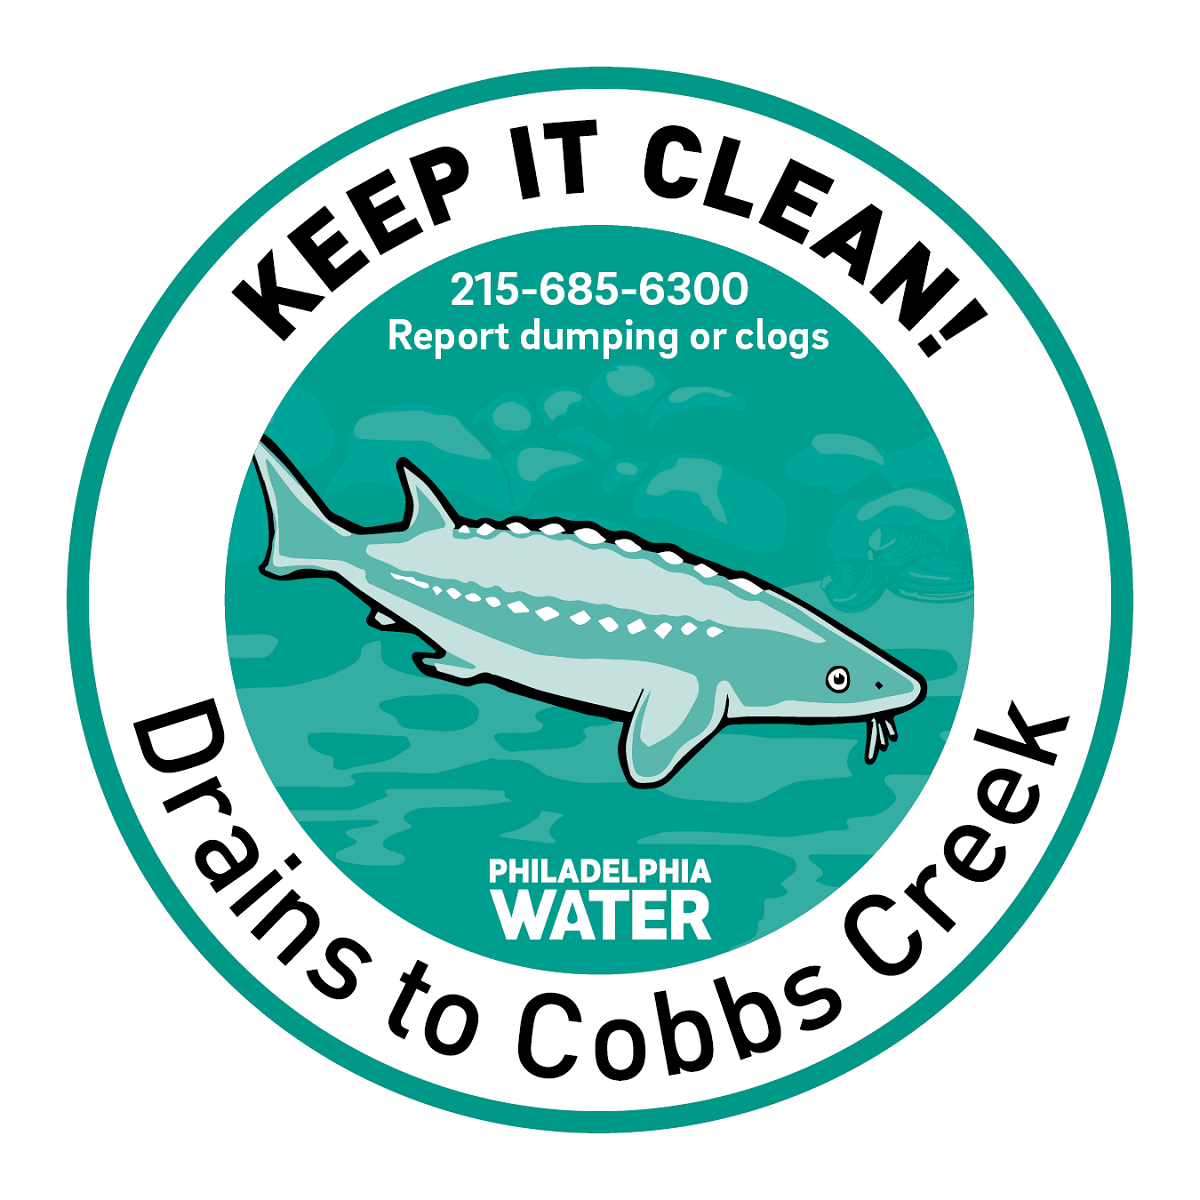 Cobbs Creek Watershed